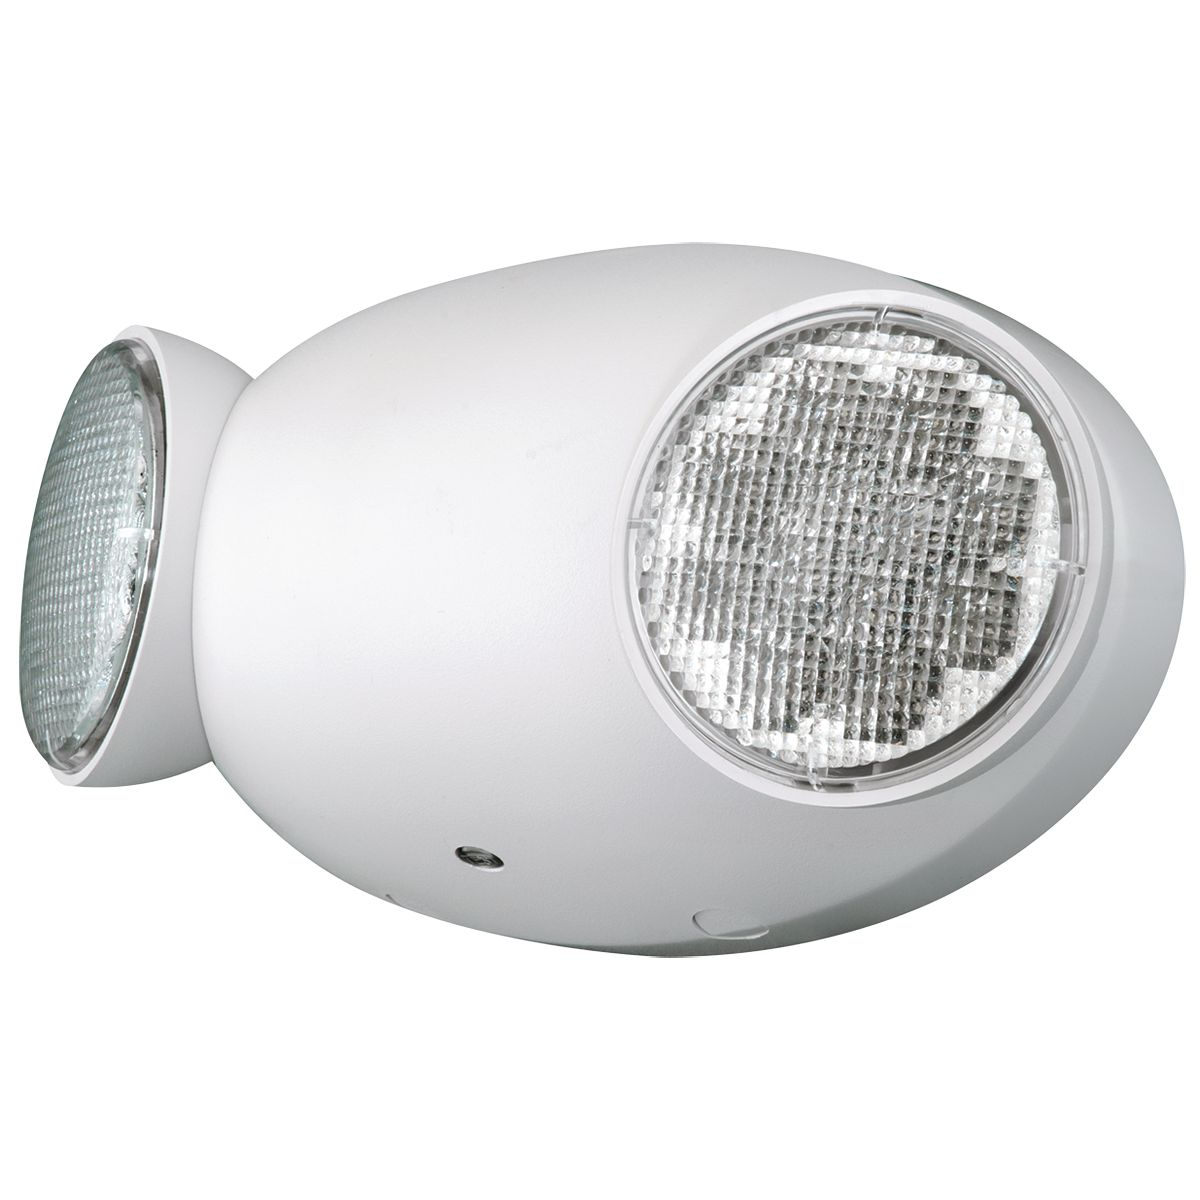 CU2 HUBBELL DUAL LED HEAD, WHITE 120-277V EMERGENCY LIGHT